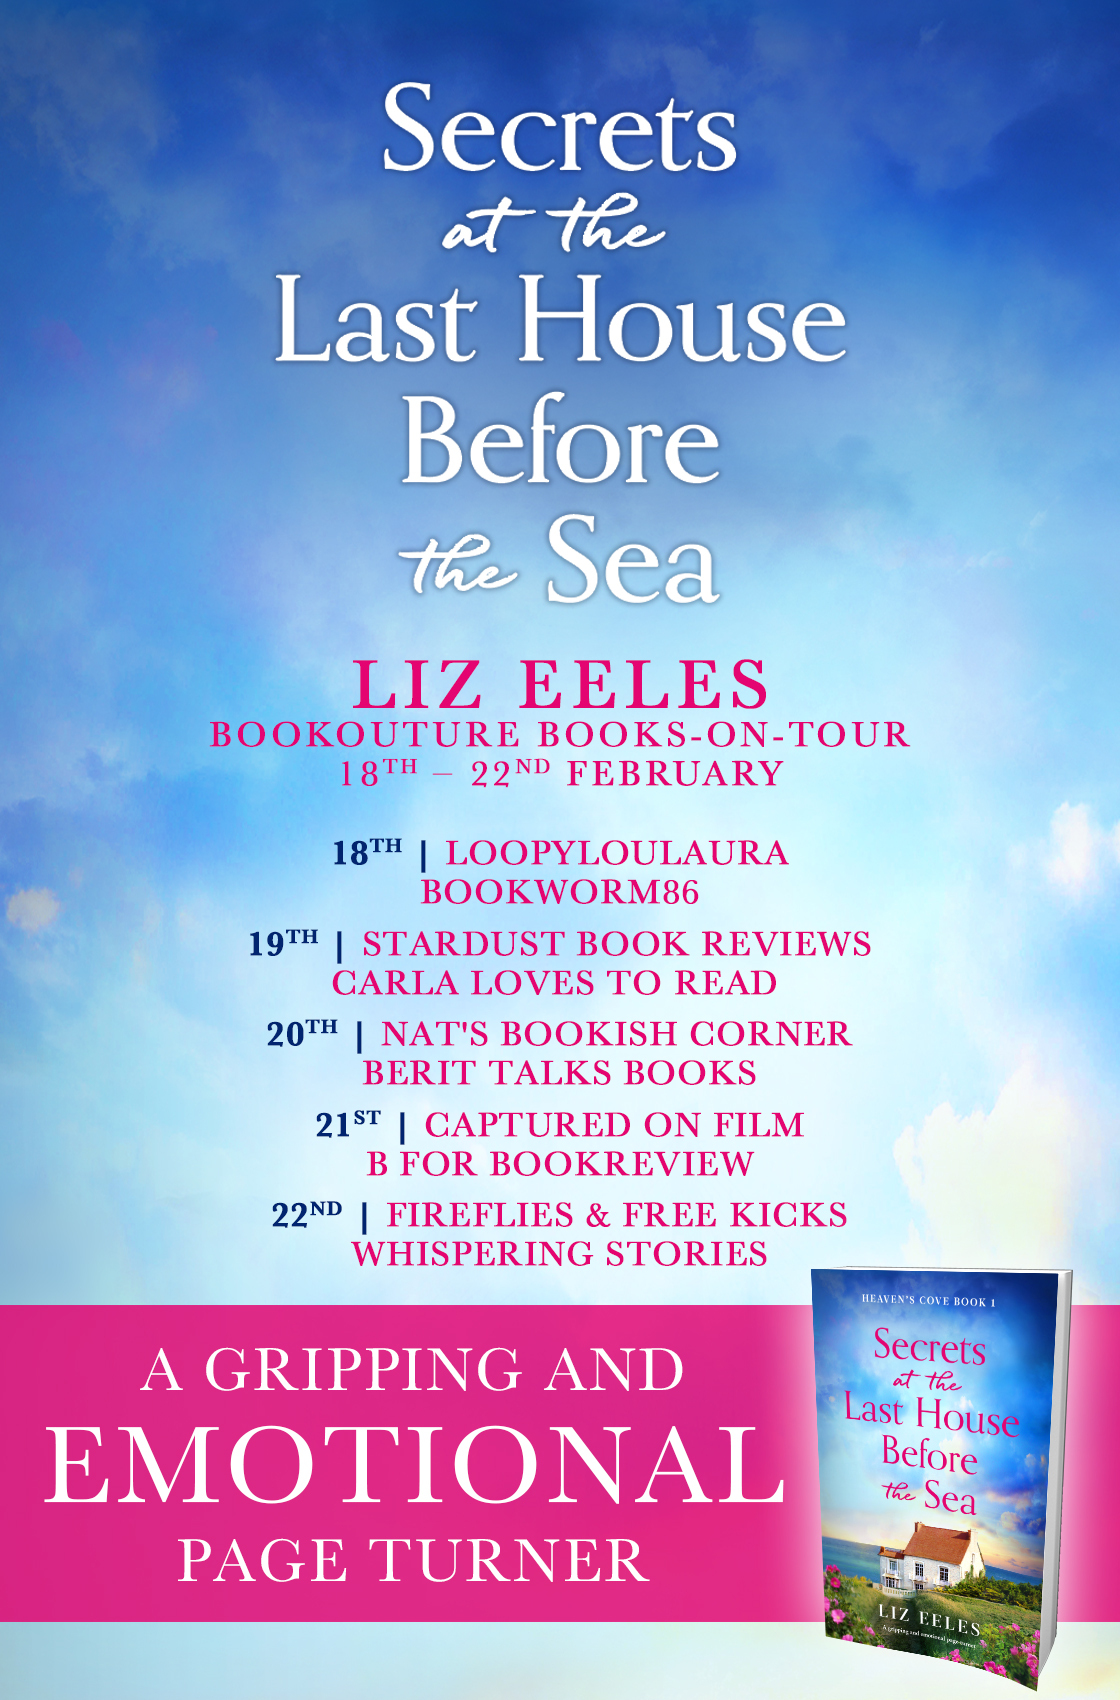 Secrets at the Last House Before the Sea blog tour banner